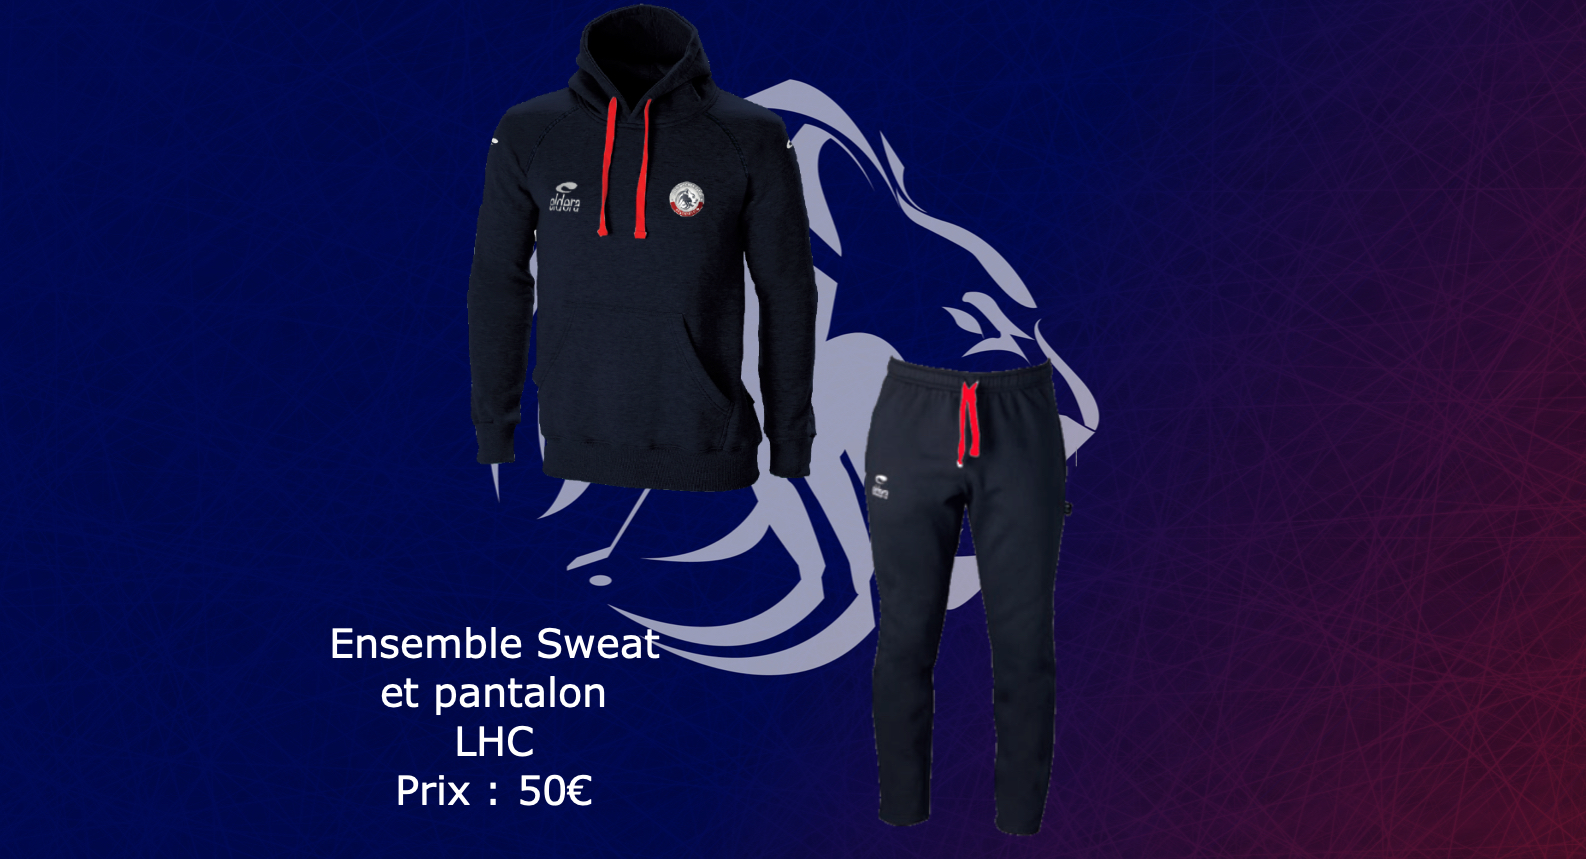 Ensemble Sweat et pantalon LHC